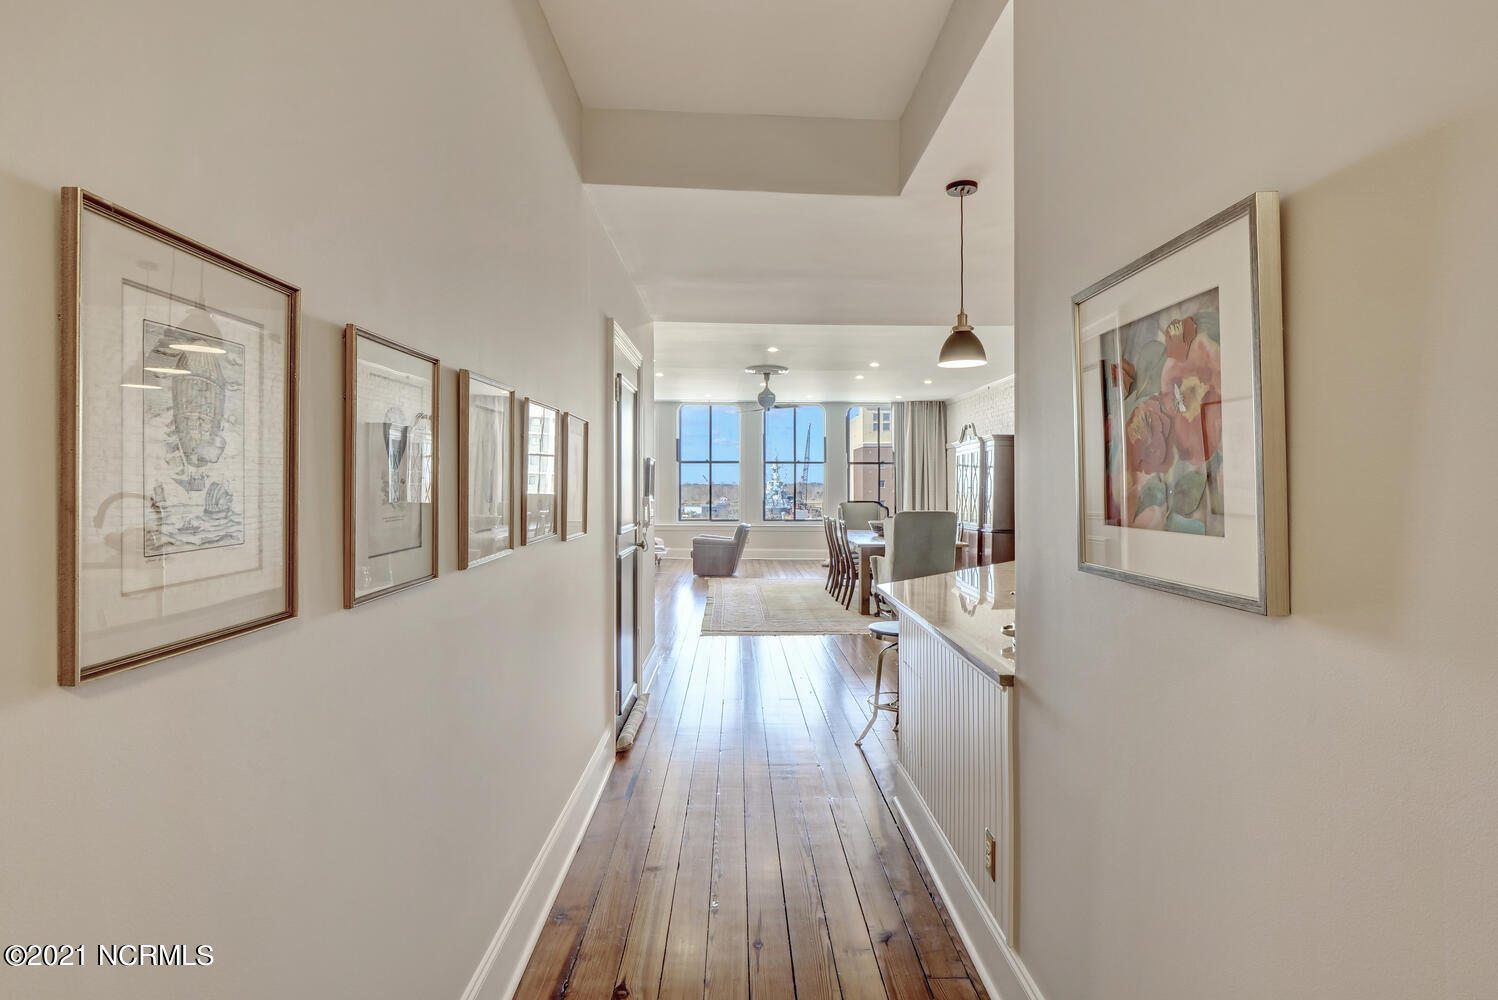 116 Front Street, Wilmington, North Carolina 28401, 2 Bedrooms Bedrooms, 5 Rooms Rooms,2 BathroomsBathrooms,Condominium,For sale,Front,100261335